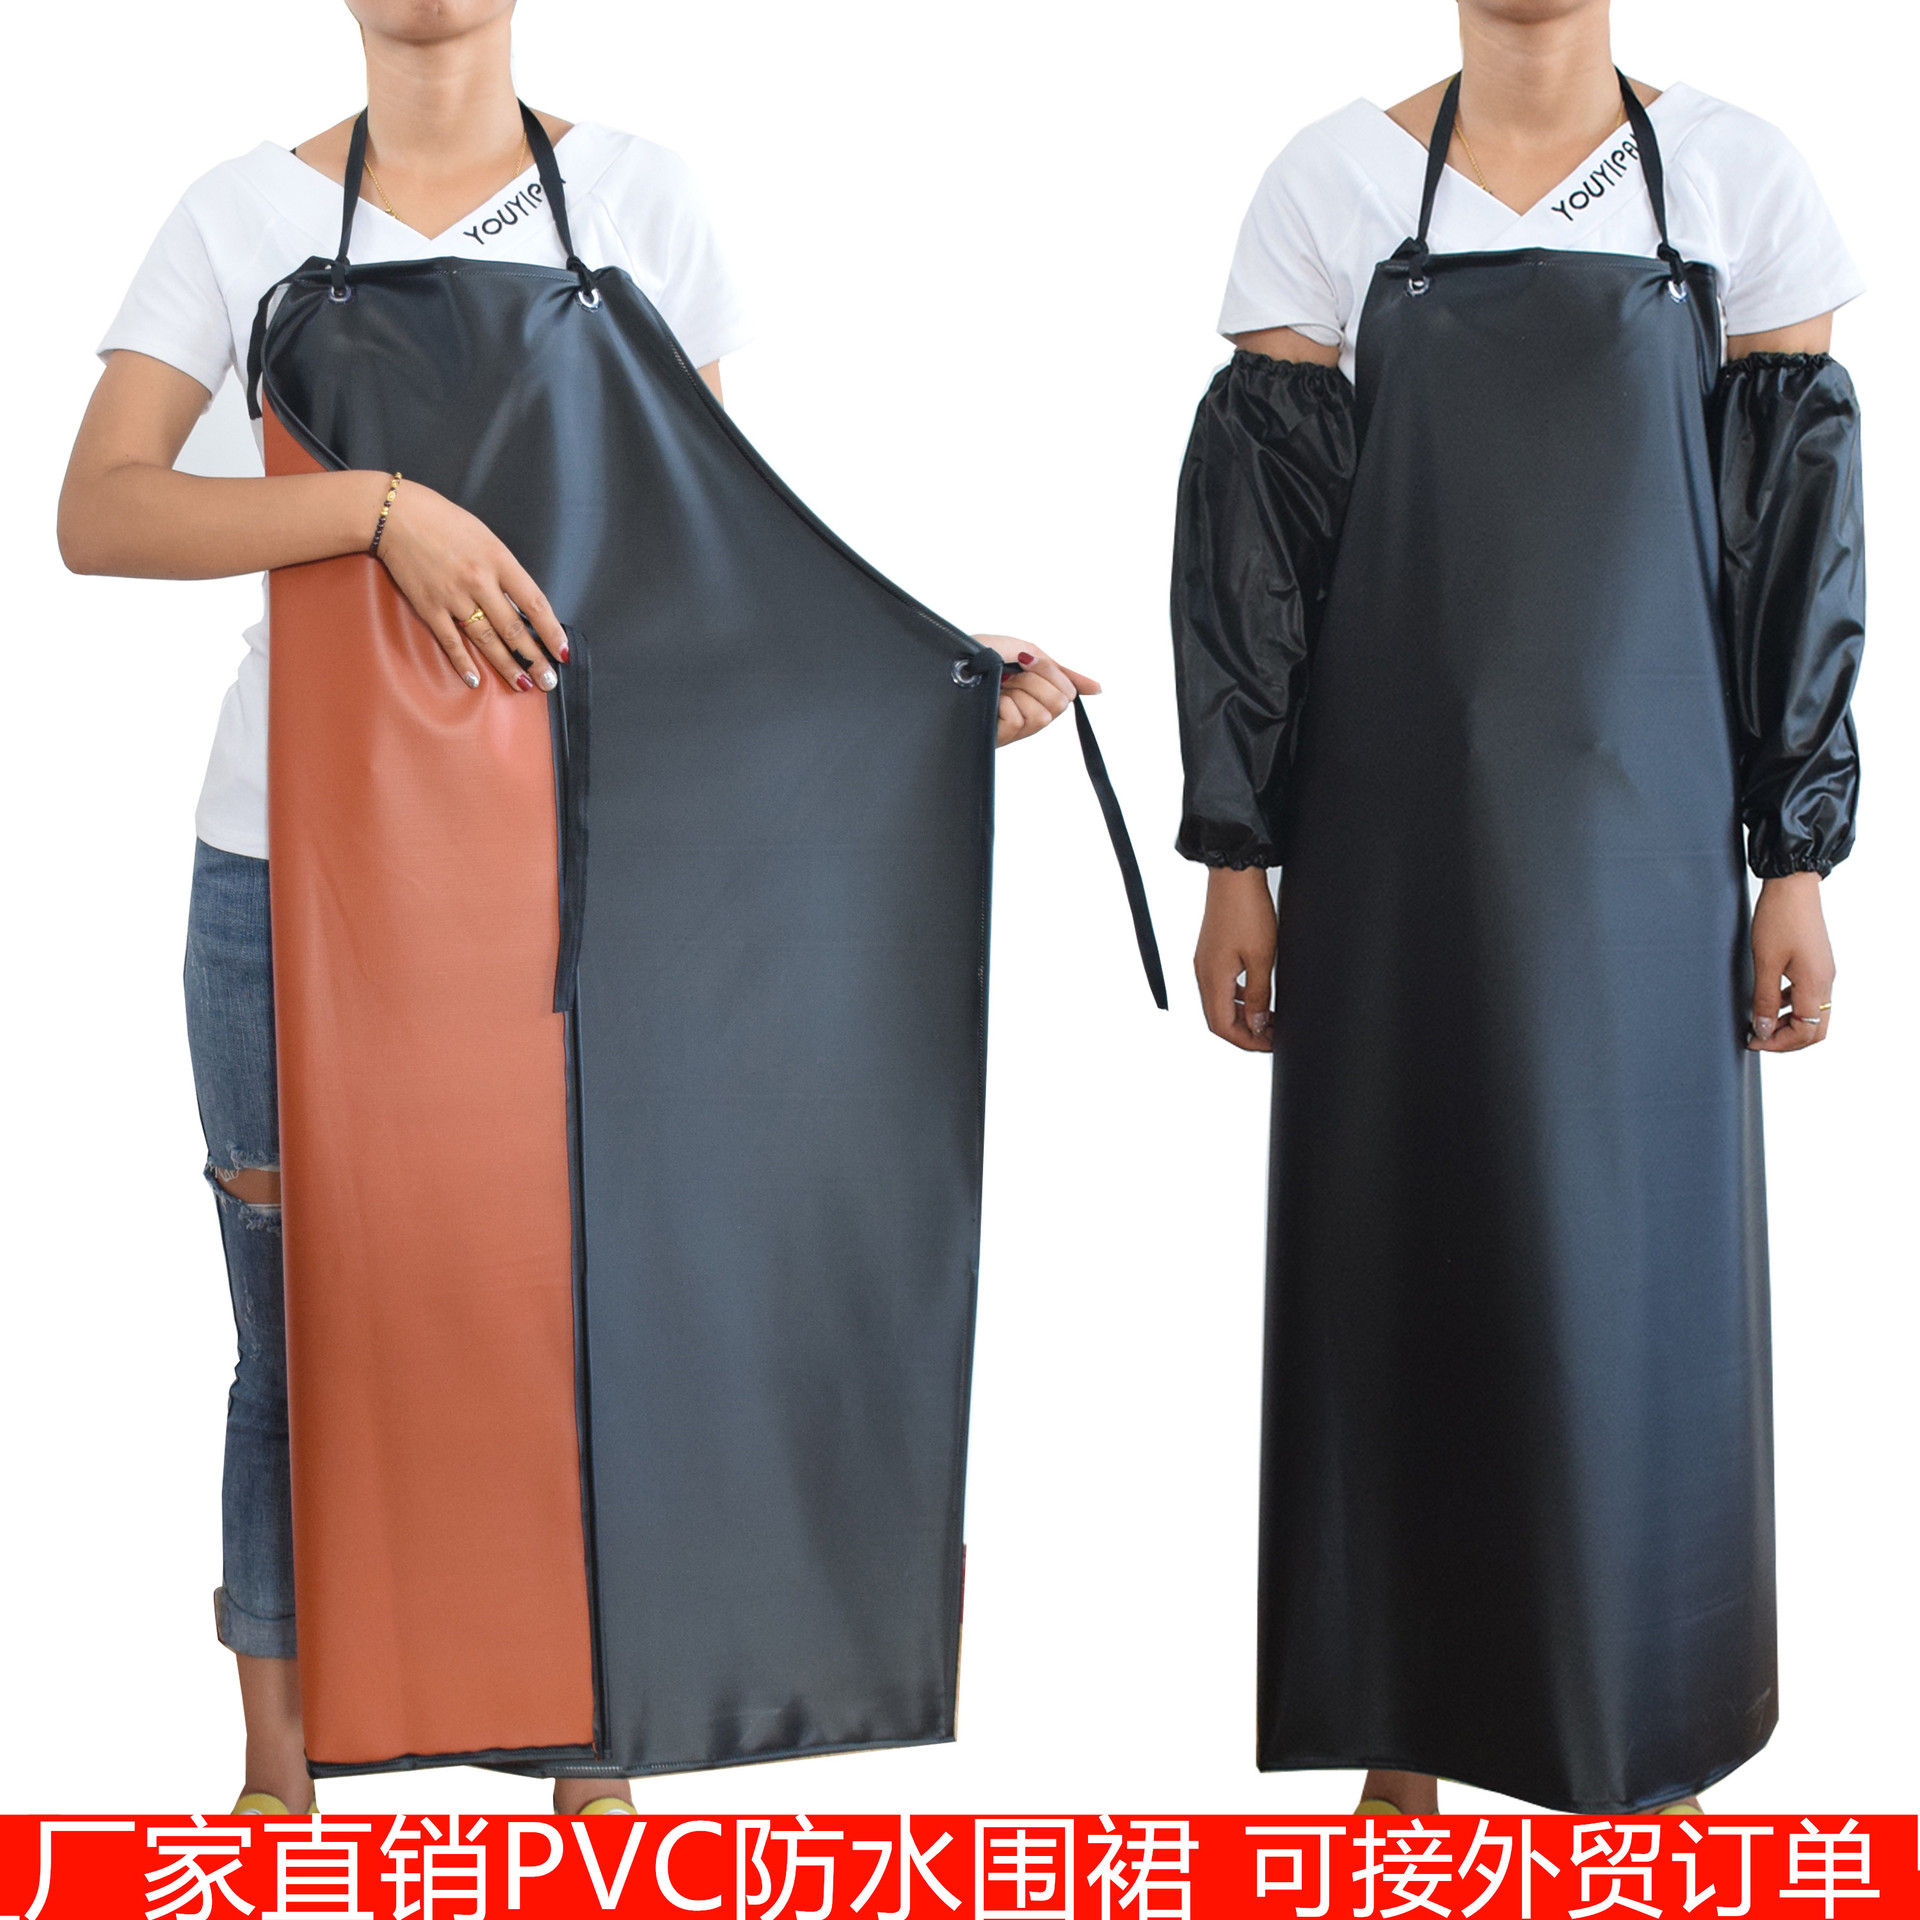 Xiongfei Labor Safety Manufacturers Direct Selling Black Red Composite  materials PVC Waterproof Apron 35 Silk Oil Resistant Aci